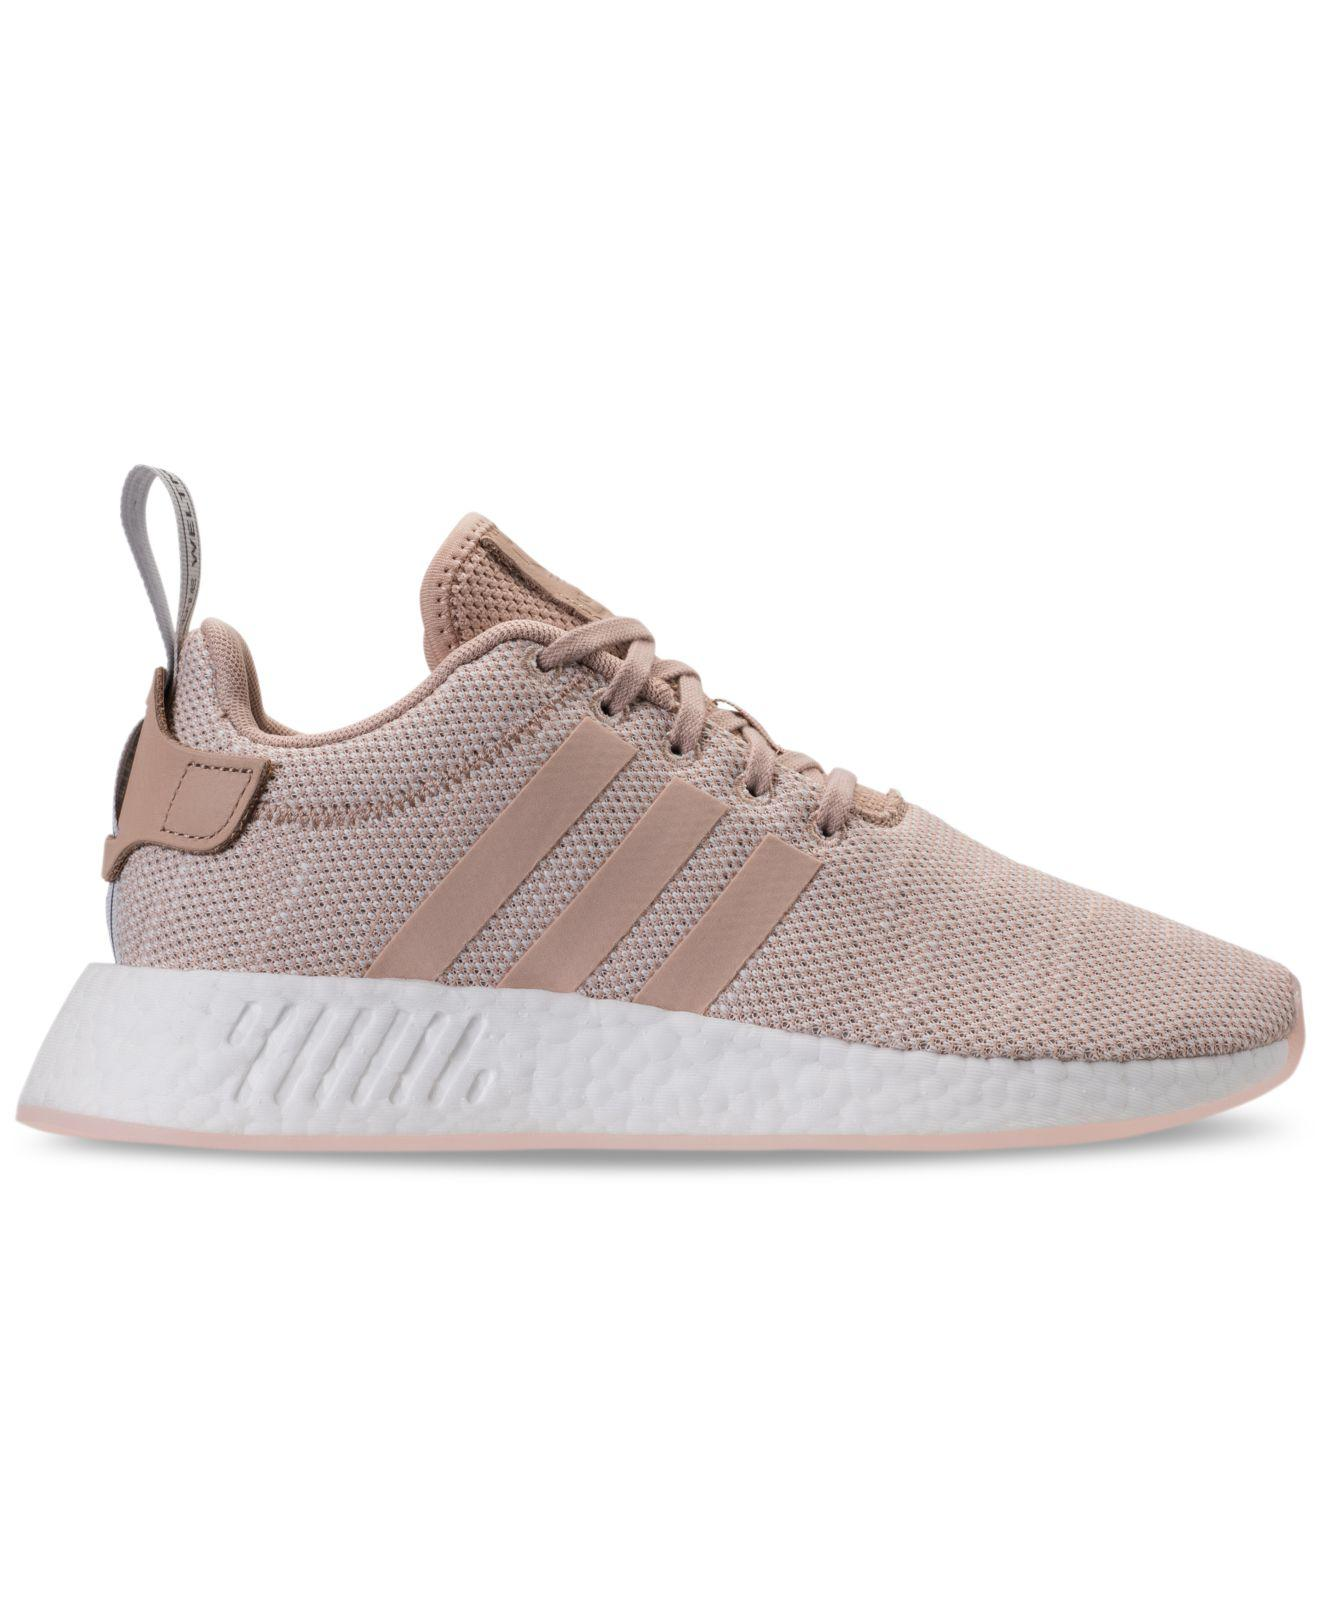 b49ce50f8 Lyst - adidas Nmd R2 Casual Sneakers From Finish Line